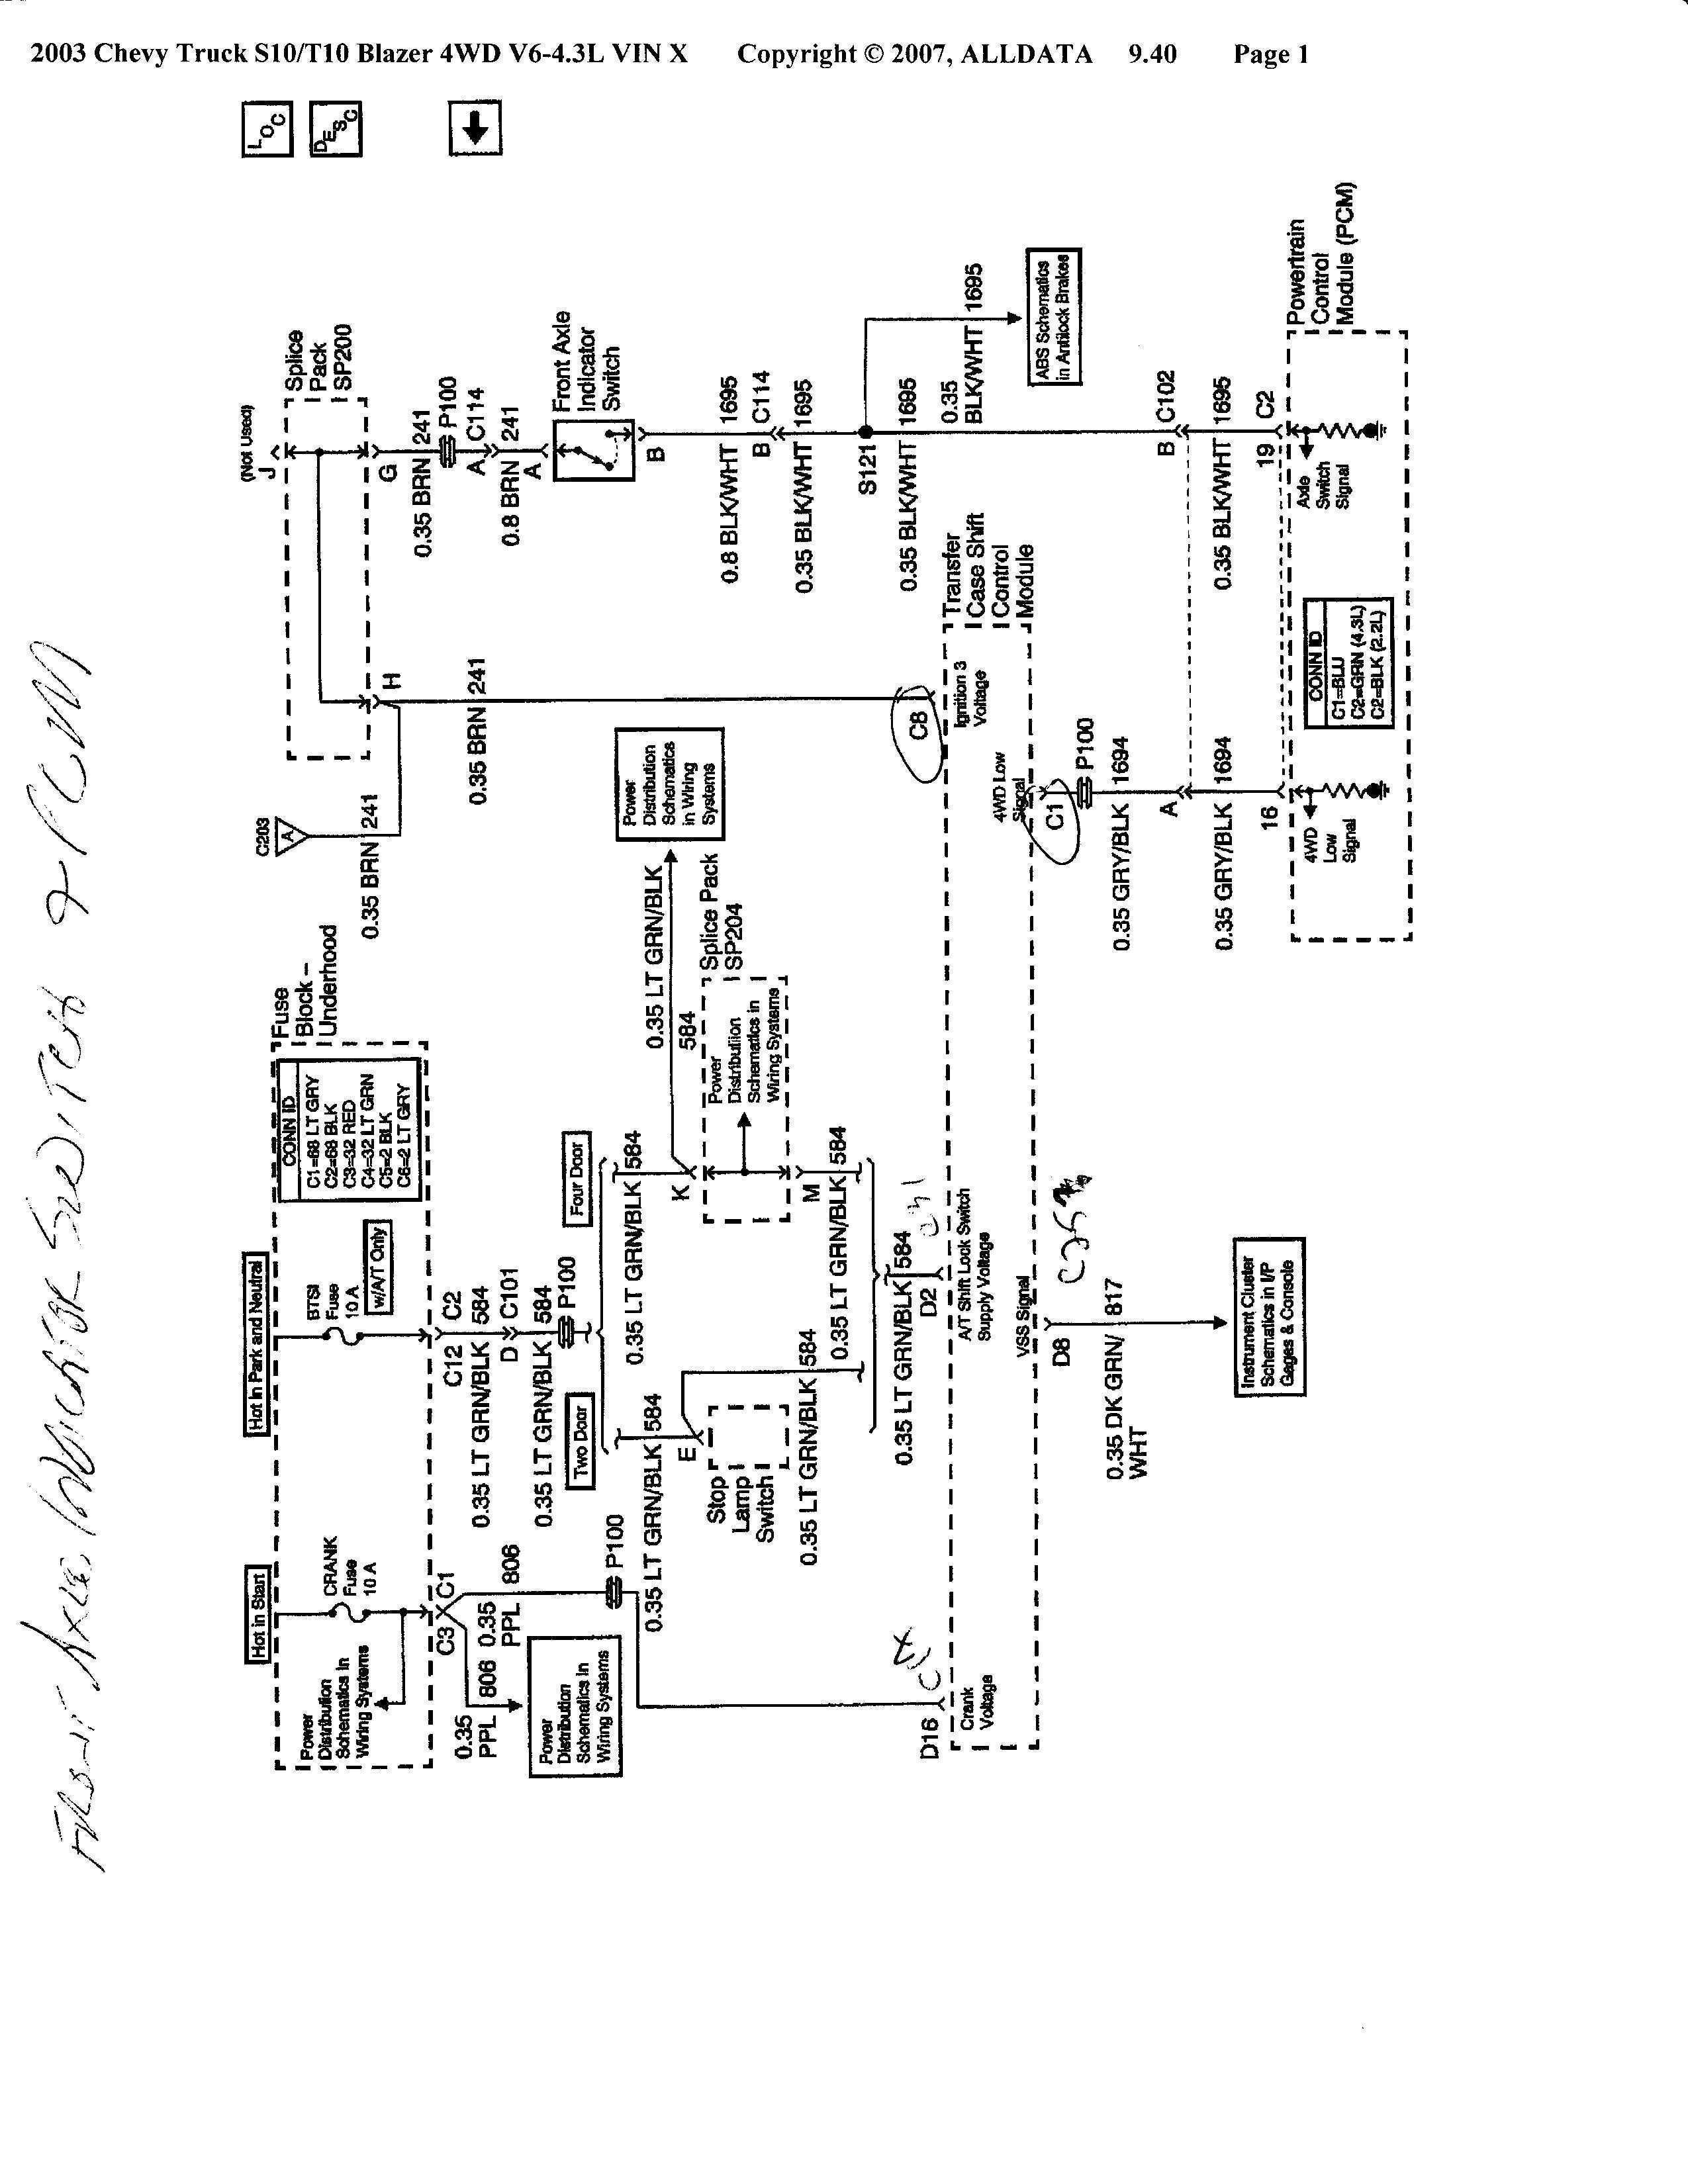 Actuator Wiring | Wiring Library - Chevy 4X4 Actuator Wiring Diagram